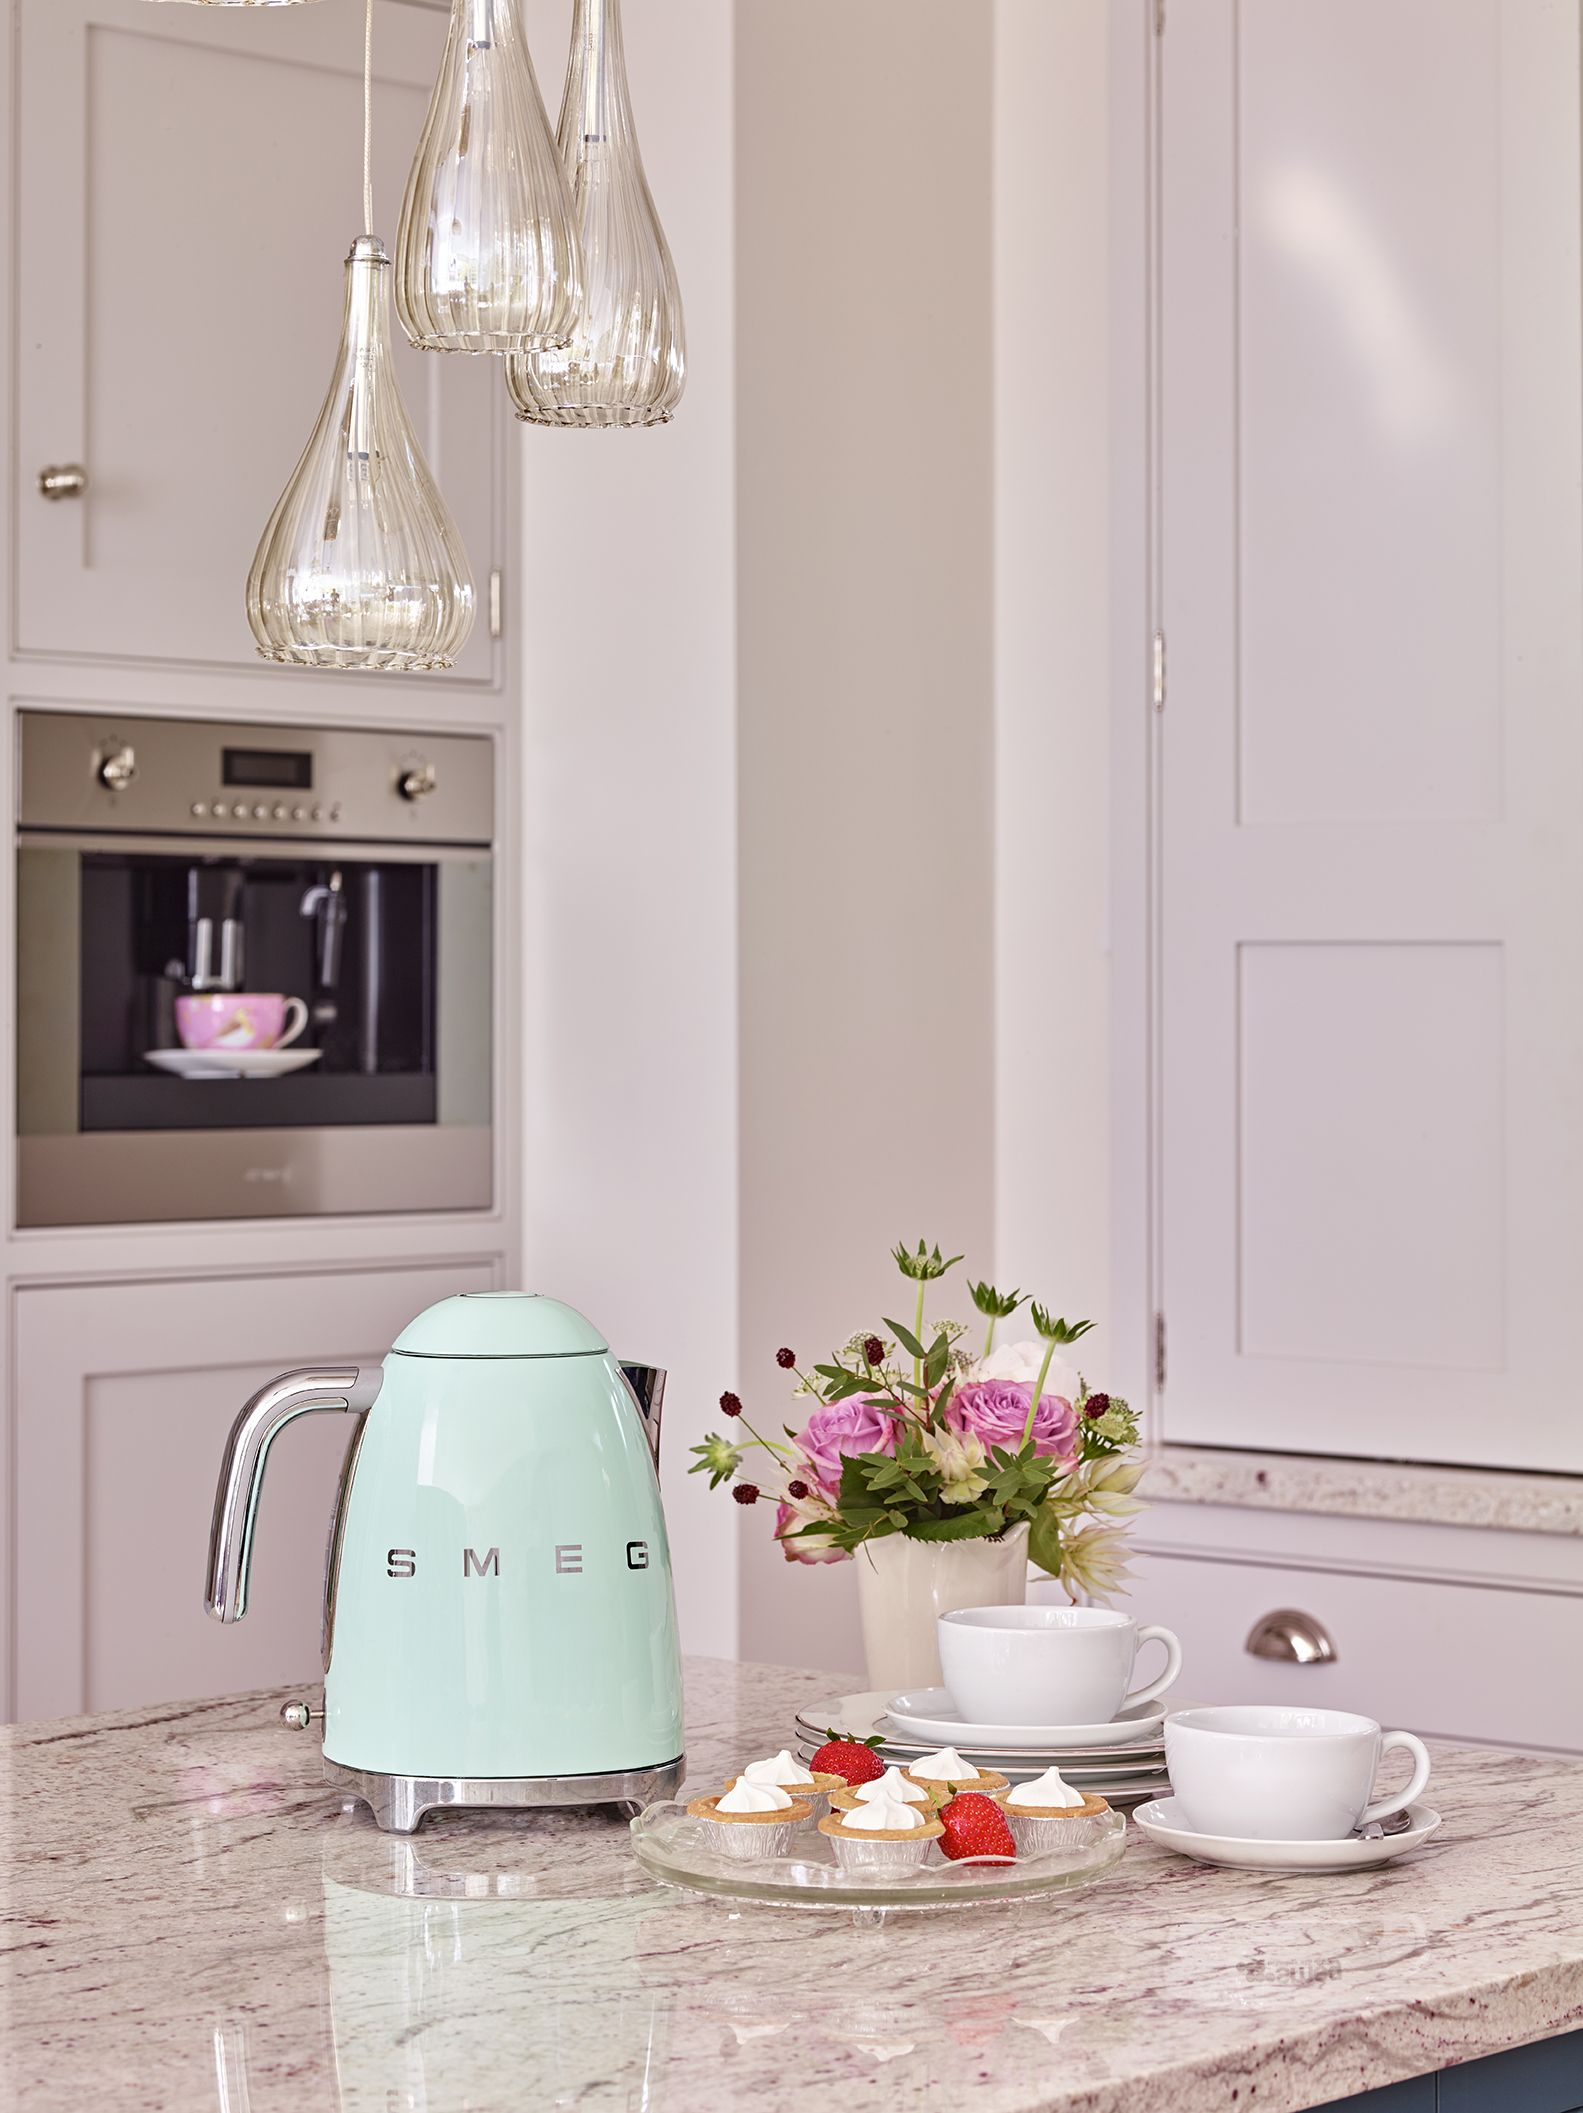 Cucina A Gas Smeg Vintage Dreaming Of The S M E G Retro Electric Kettle In Mint Or Cream